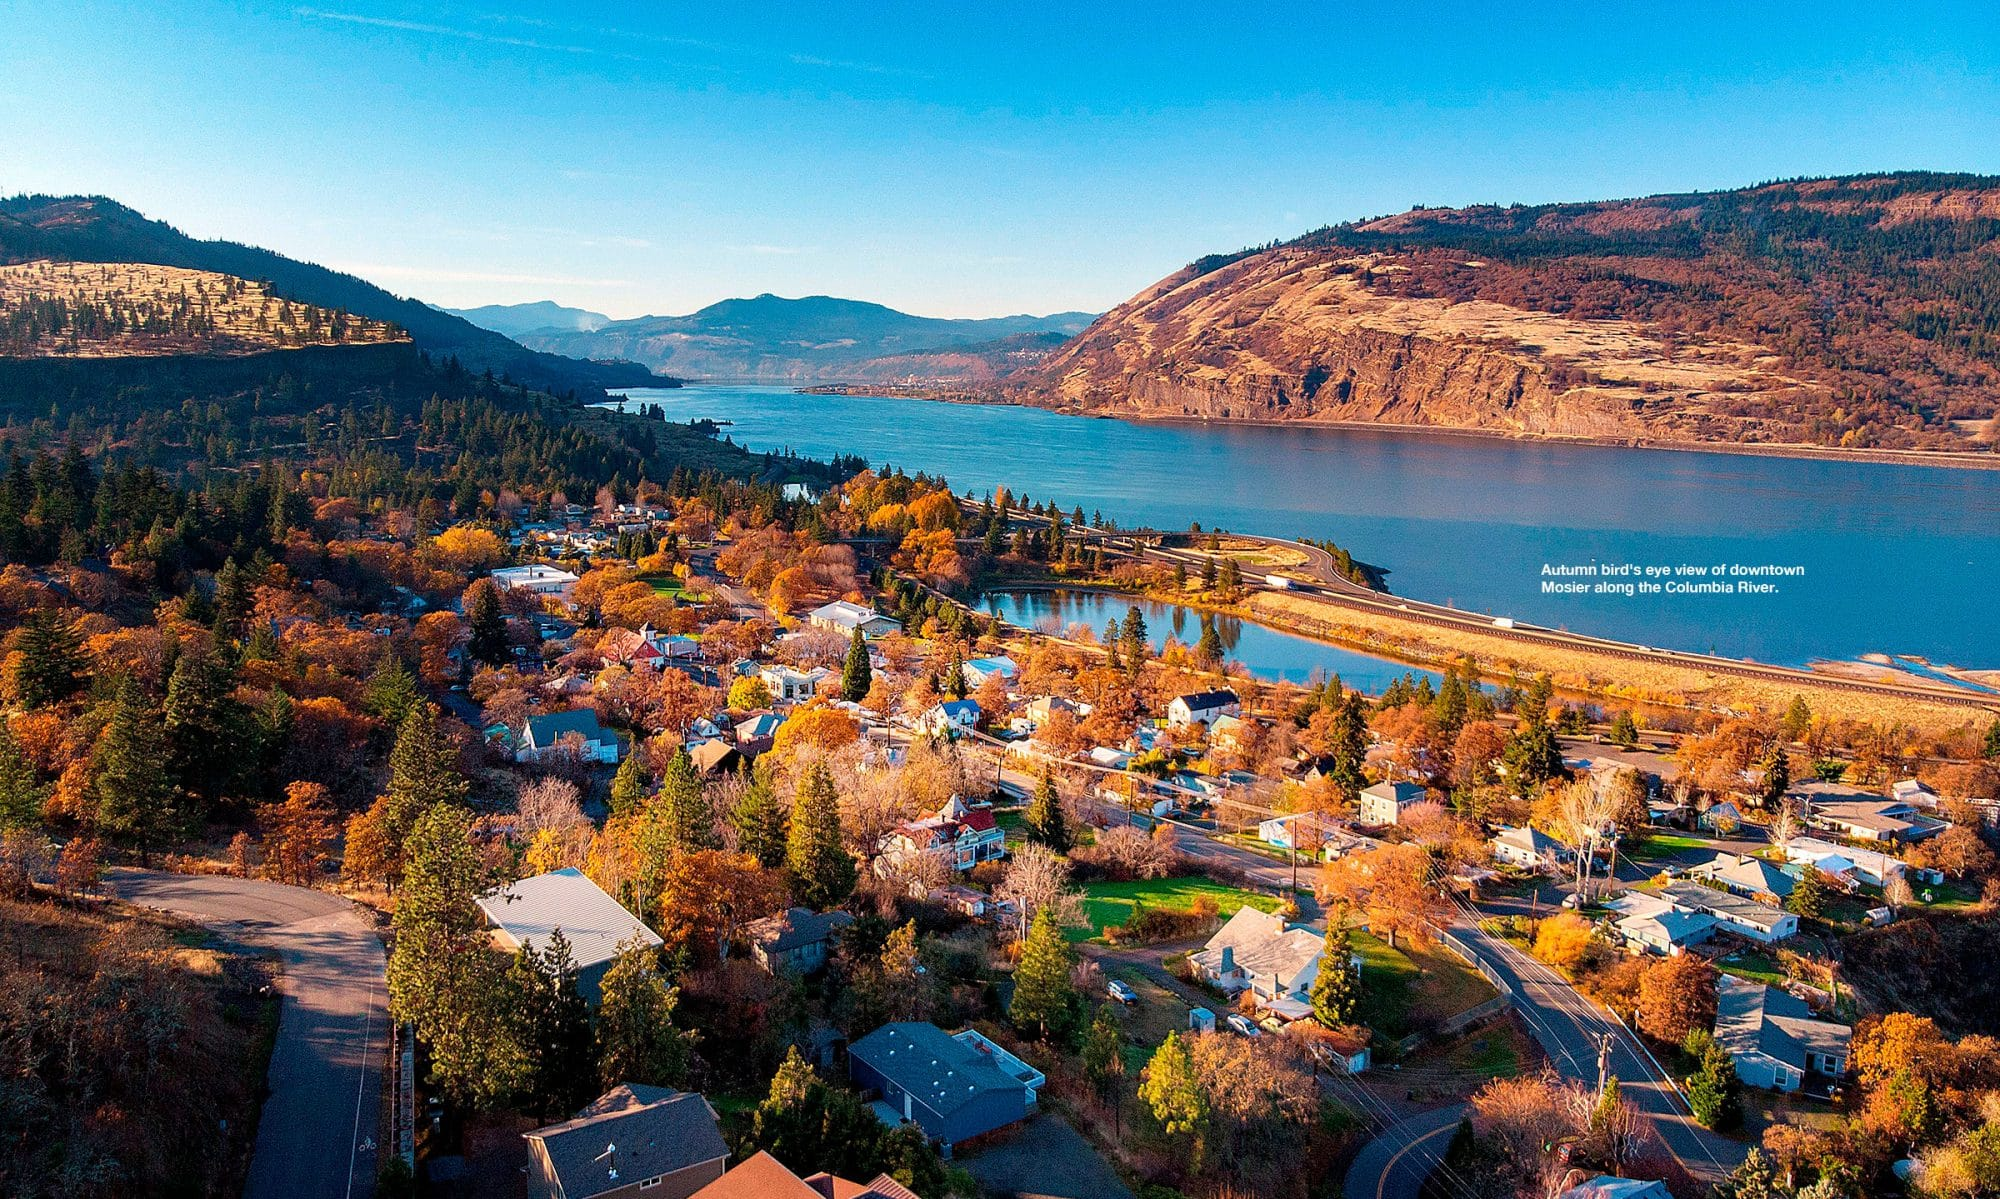 City of Mosier